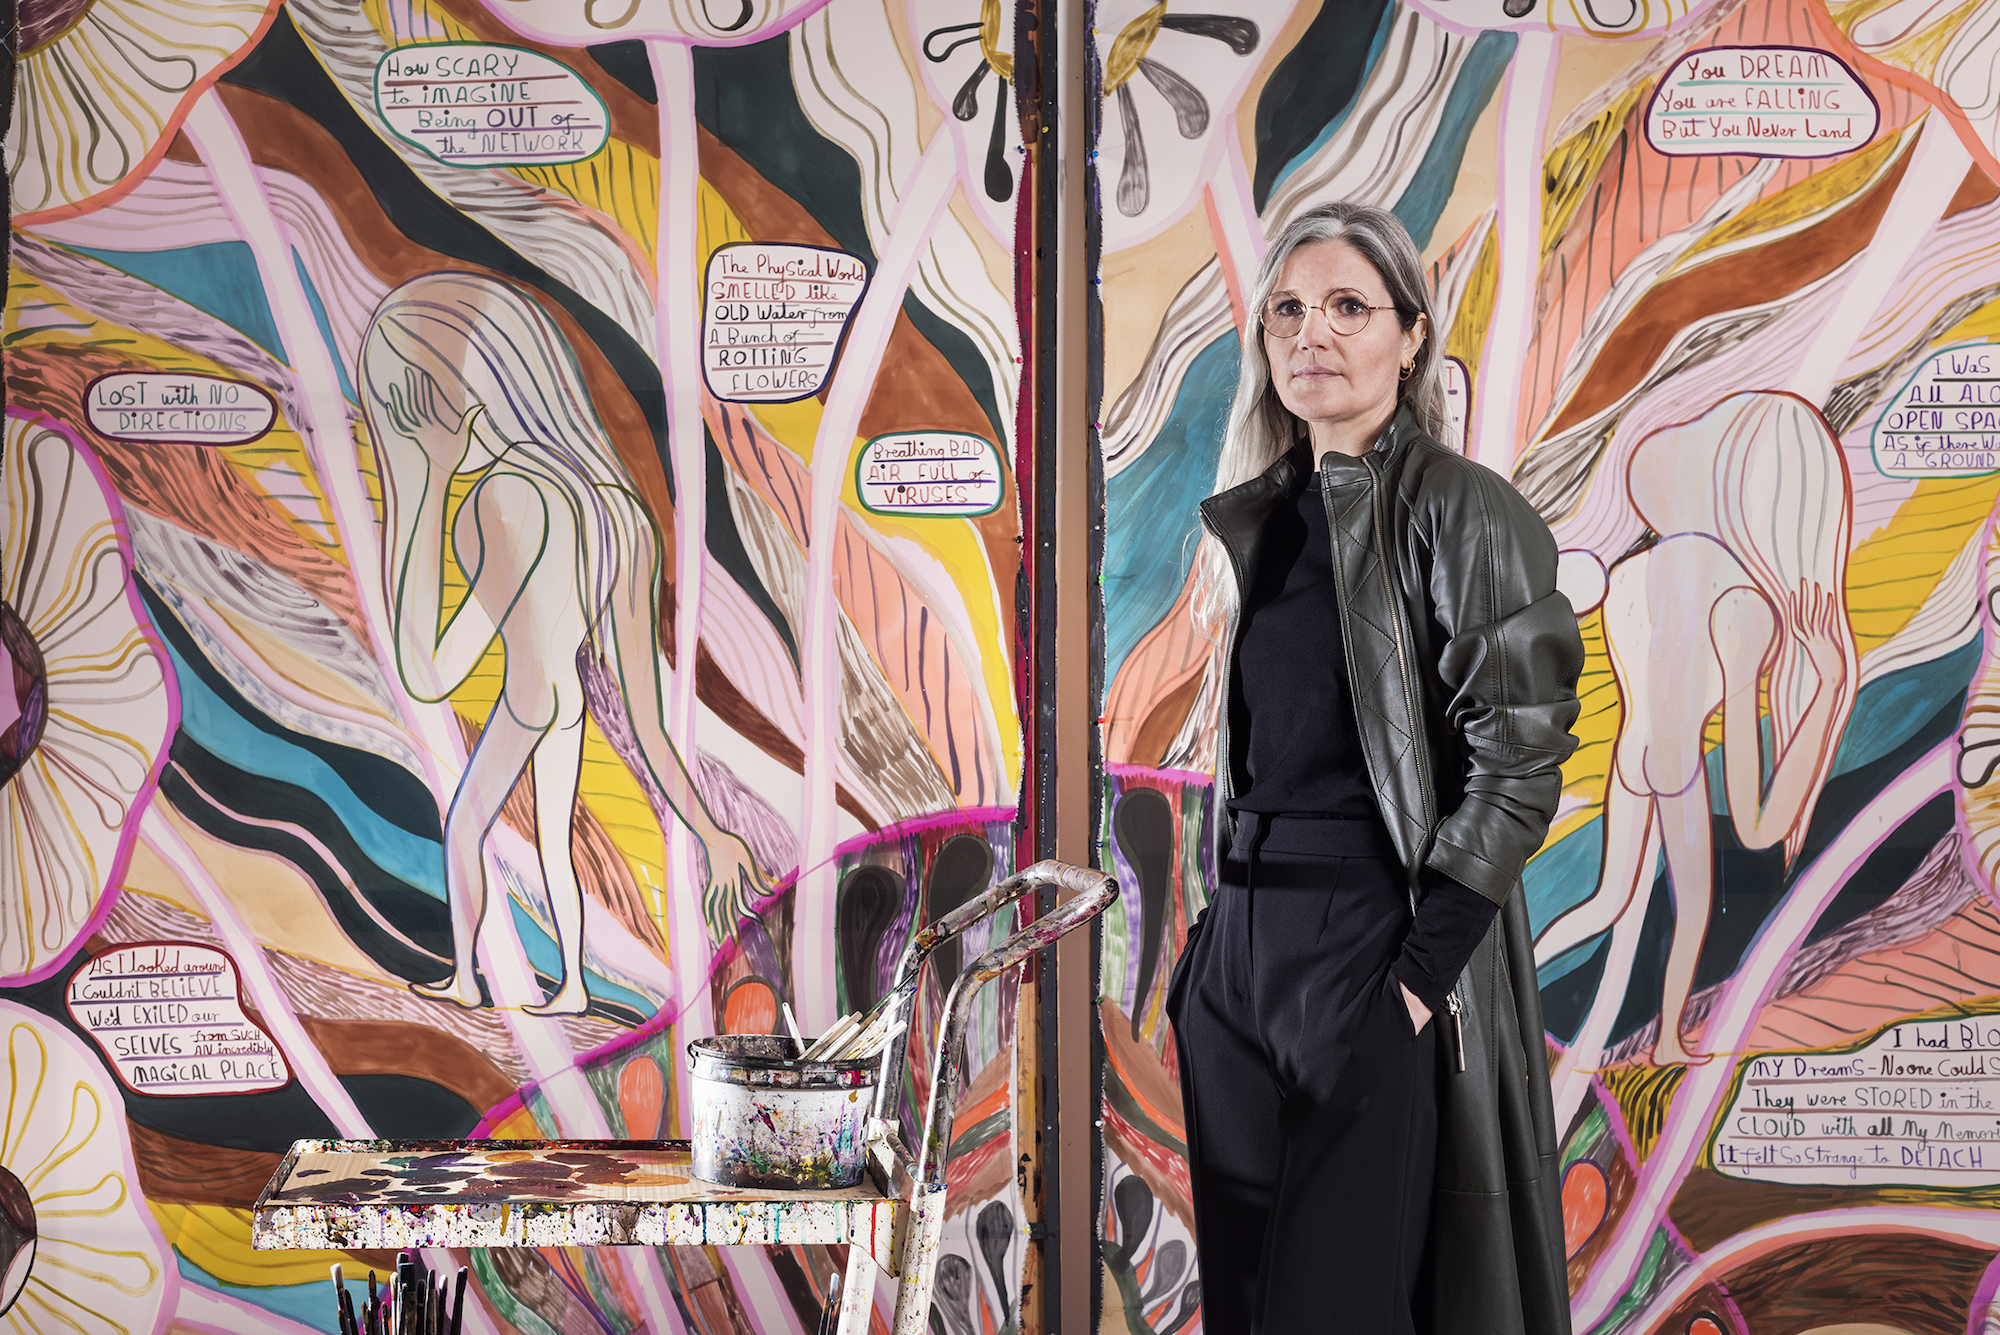 Emma Talbot, portrait in the artist's studio, pictured with When Screens Break, 2020. Photo by Thierry Bal